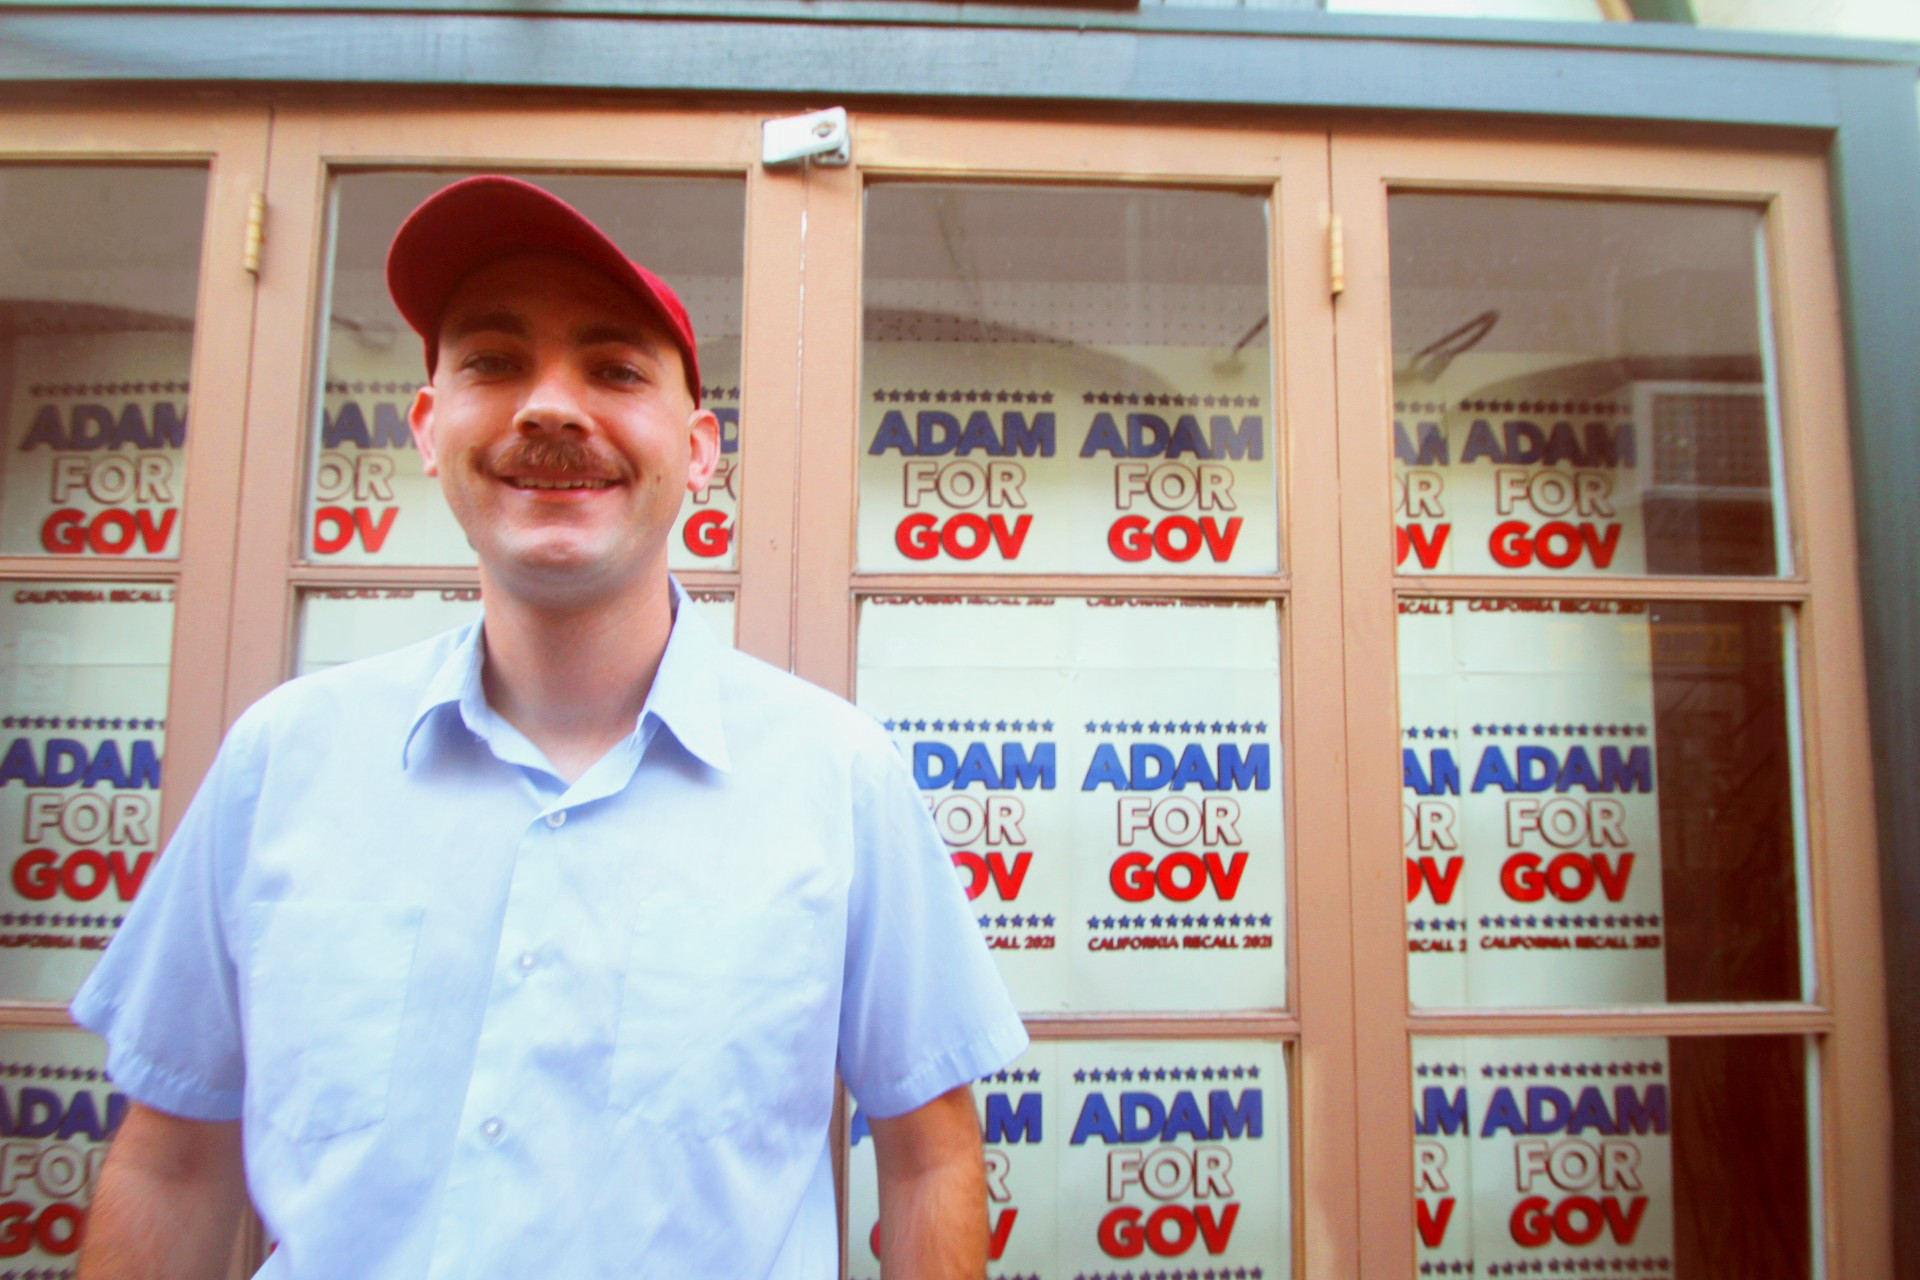 A man with a red cap and blue dress shirt stands in front of a window that has signs saying Adam for Gov